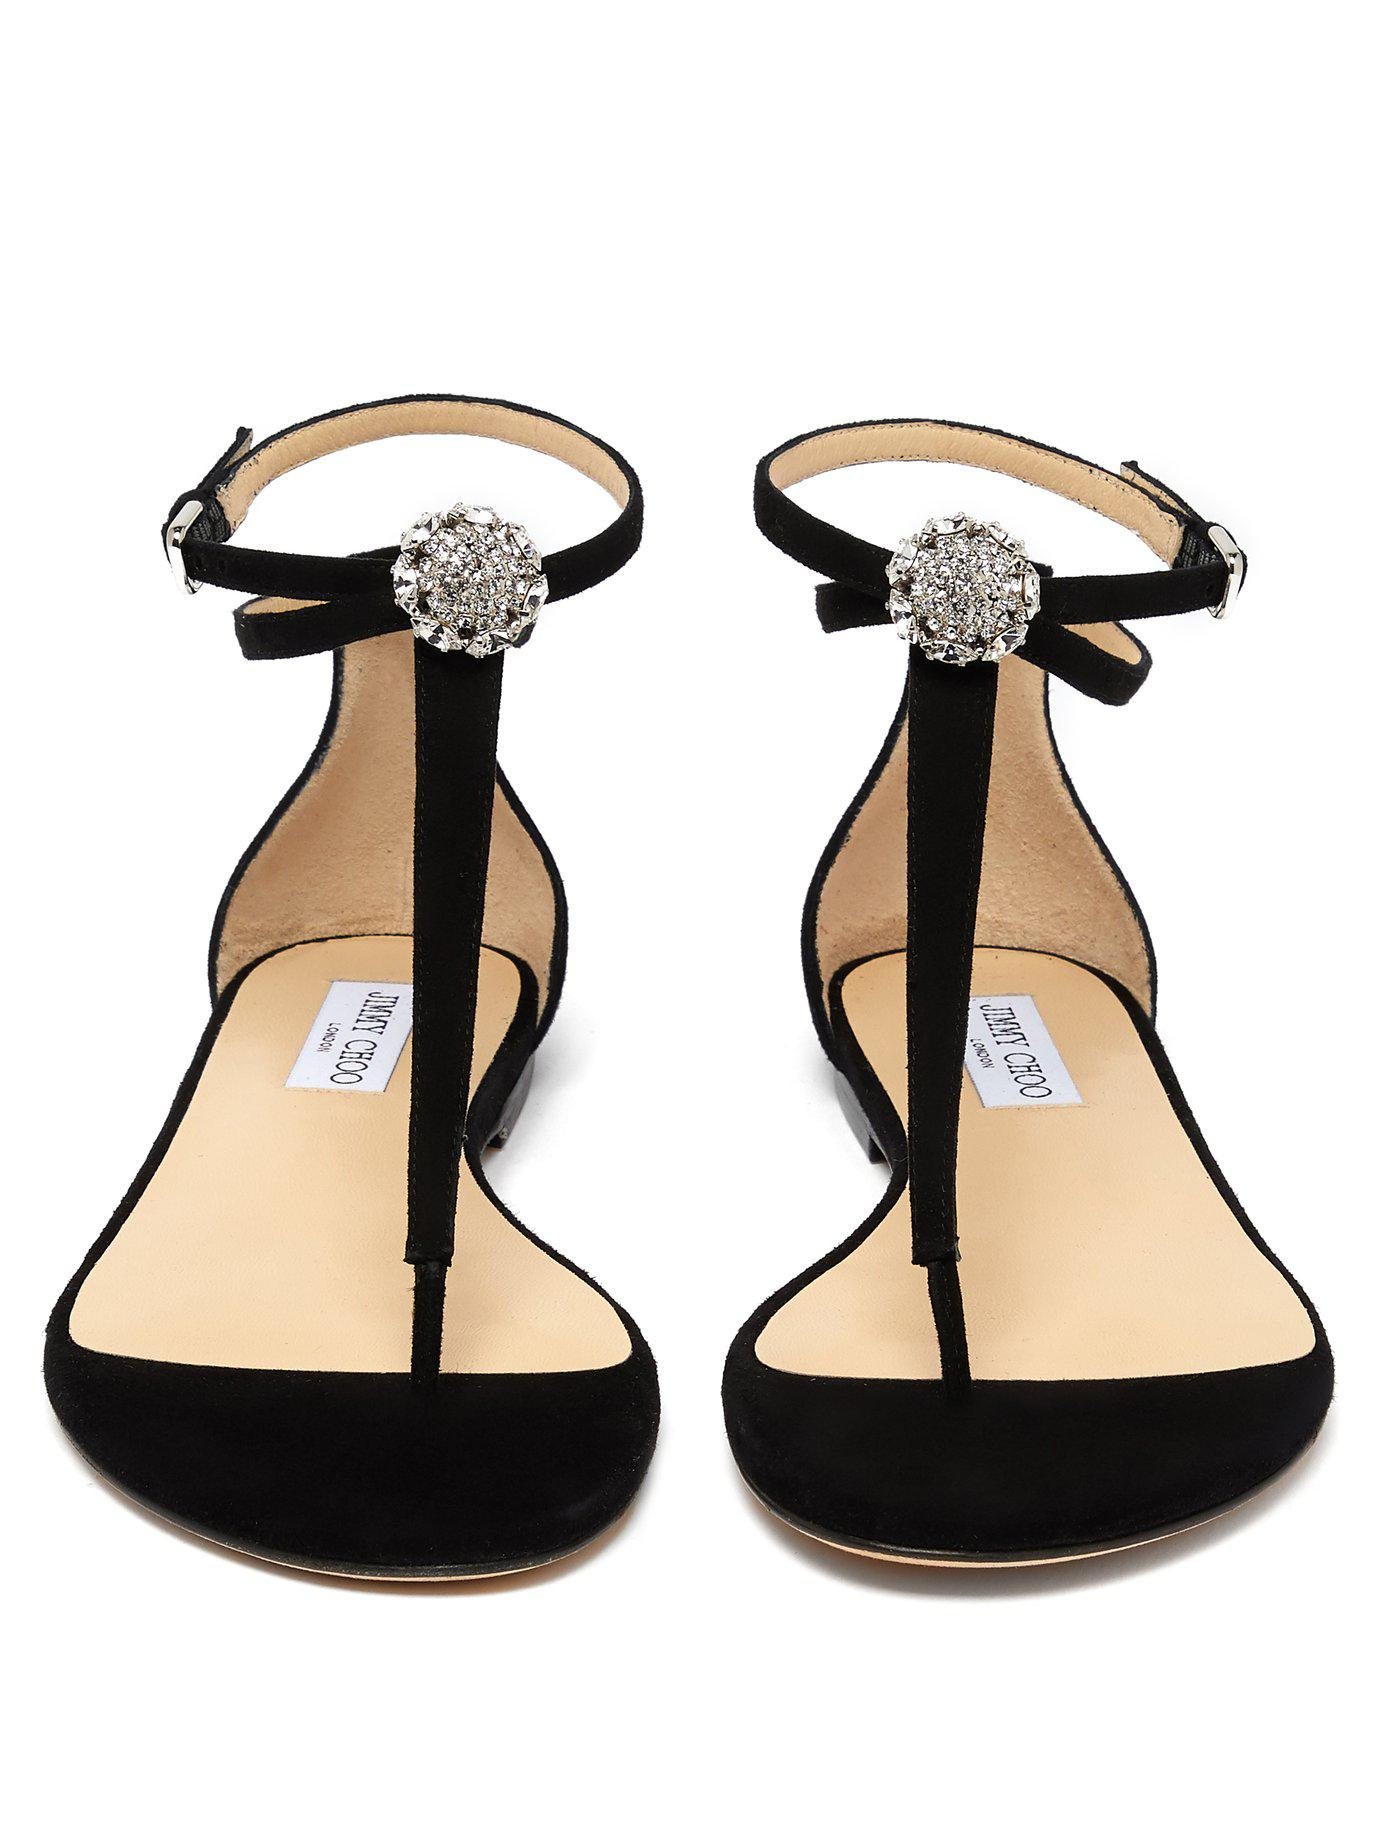 e593b39b53282 Lyst - Jimmy Choo Afia Crystal-embellished Suede Sandals in Black